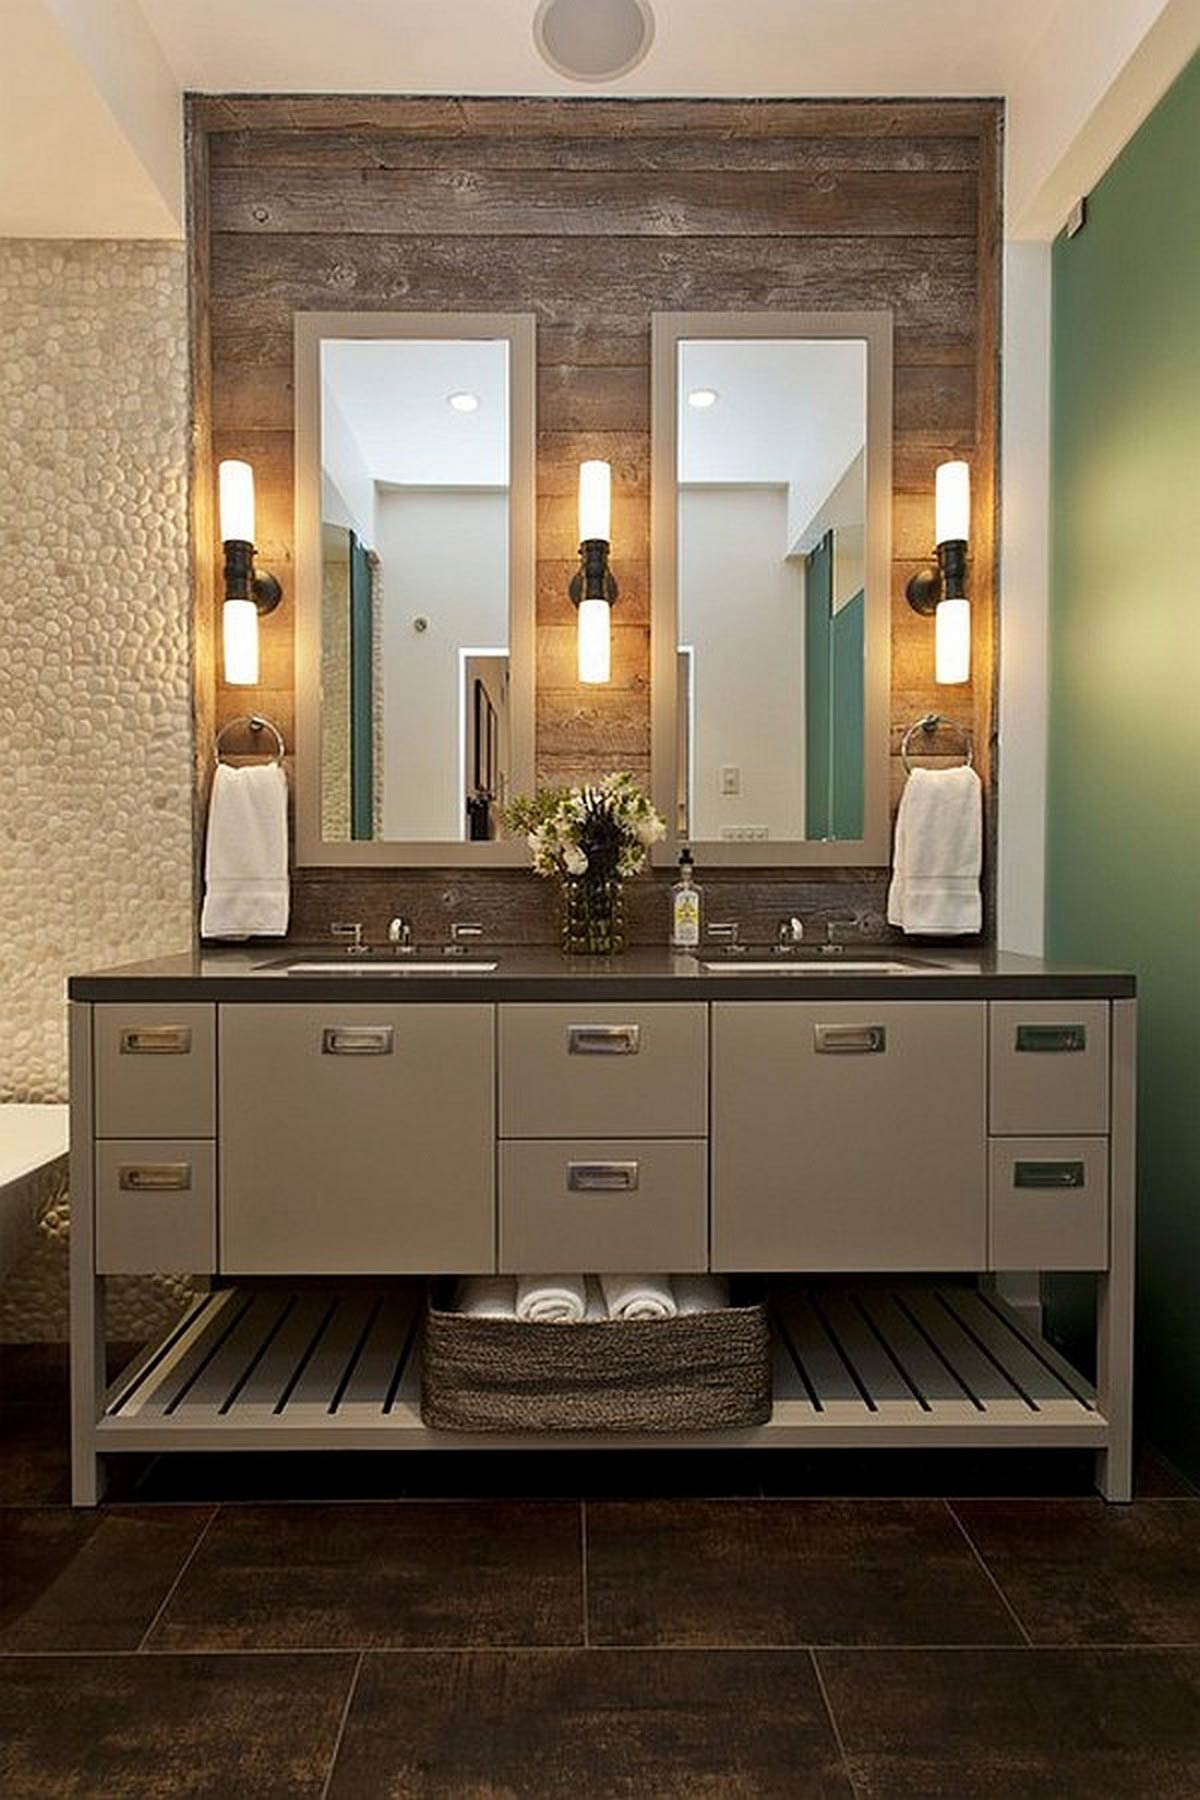 Modern Bathroom with modern design of lowes bathroom lighting plus double mirror and sink with bathroom cabinet ideas